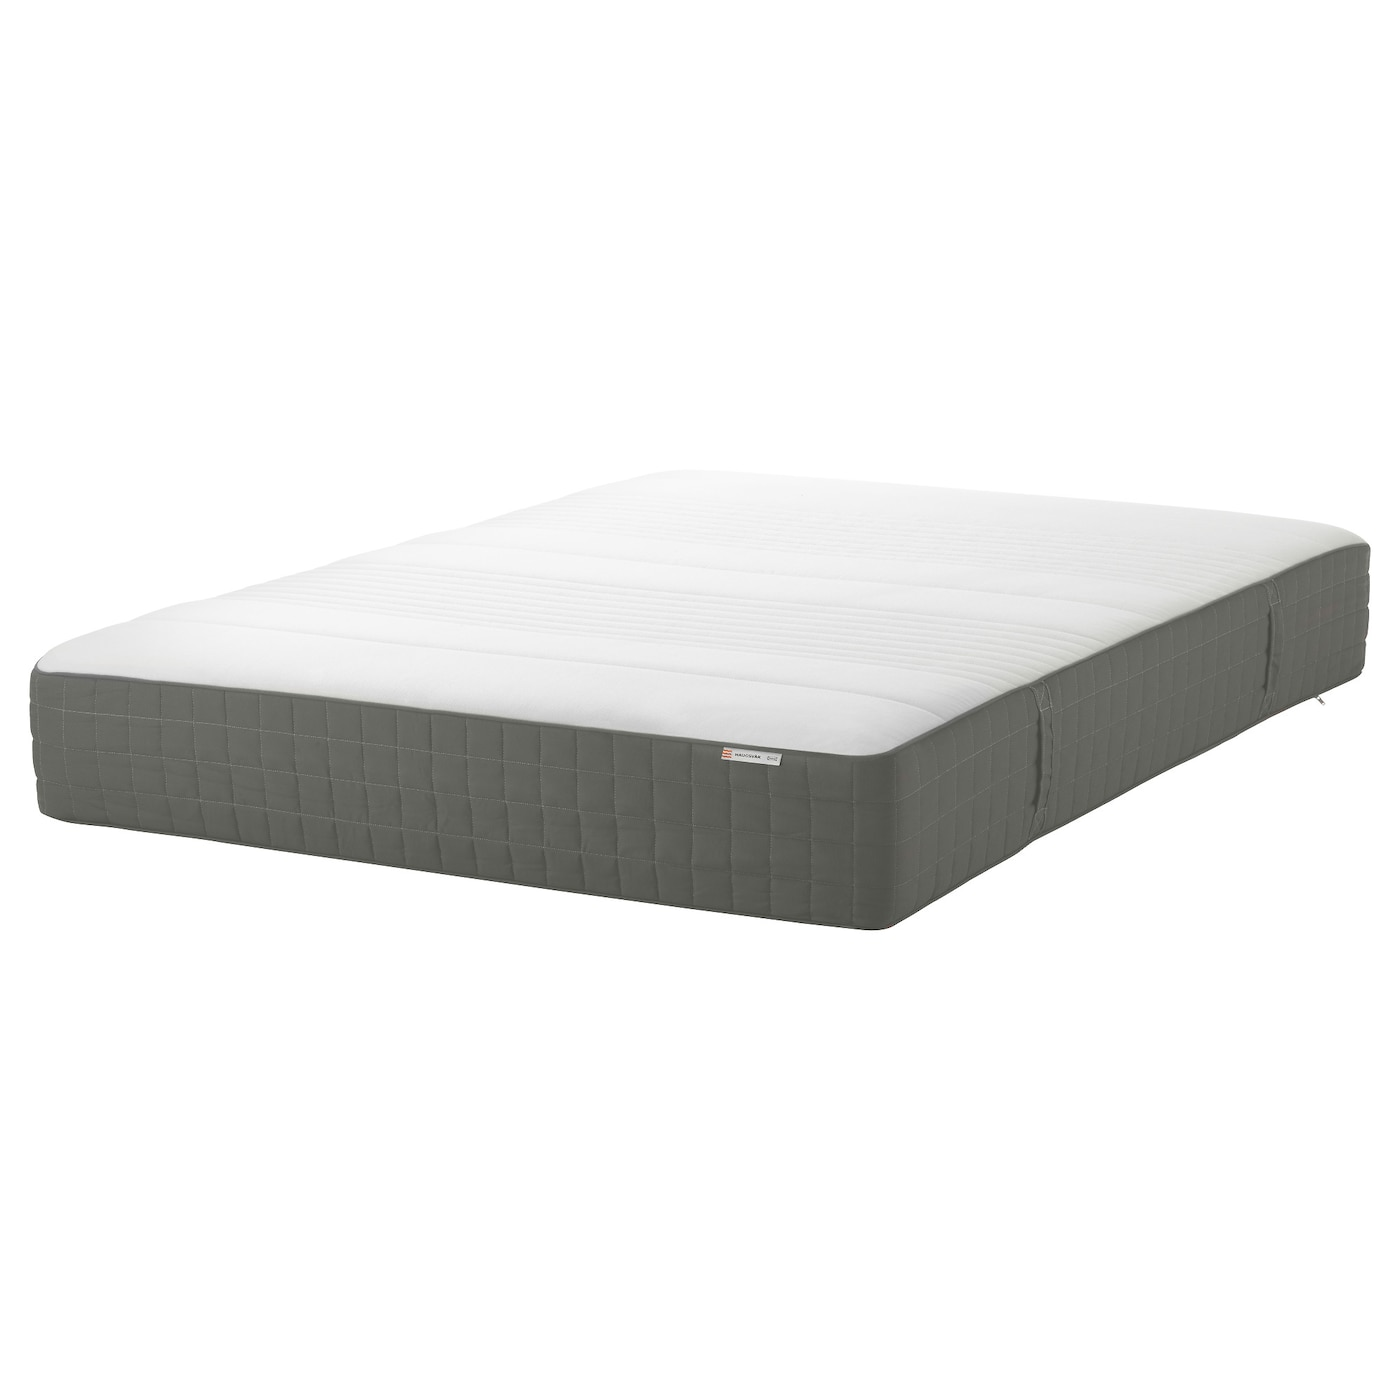 Ikea Haugsvar Hybrid mattress, firm, dark gray, Queen